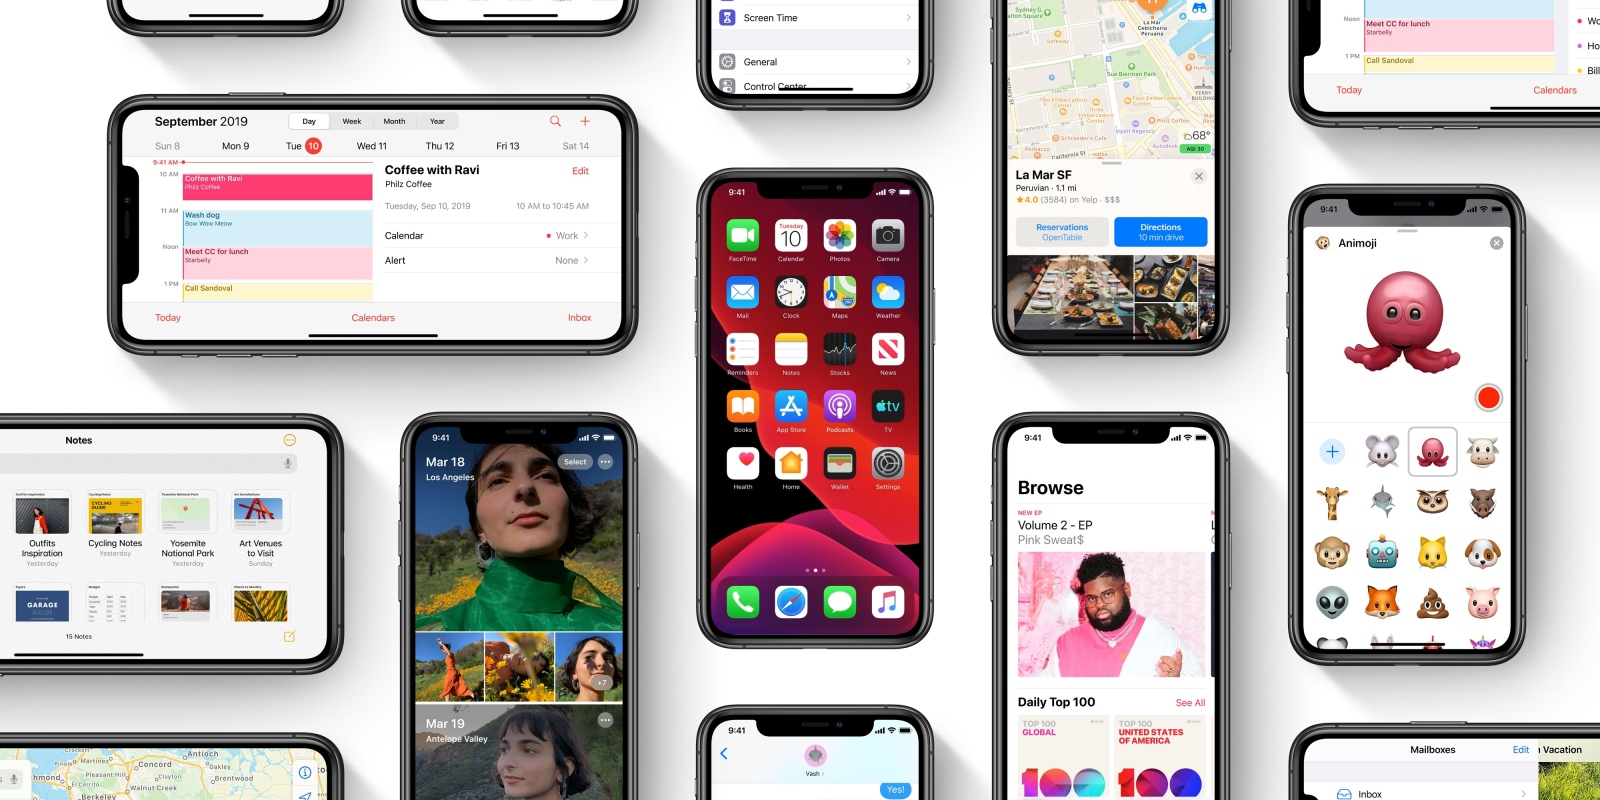 9to5mac.com - Apple says iOS 13 is now running on 50% of all iPhones, iPadOS adoption hits 33%